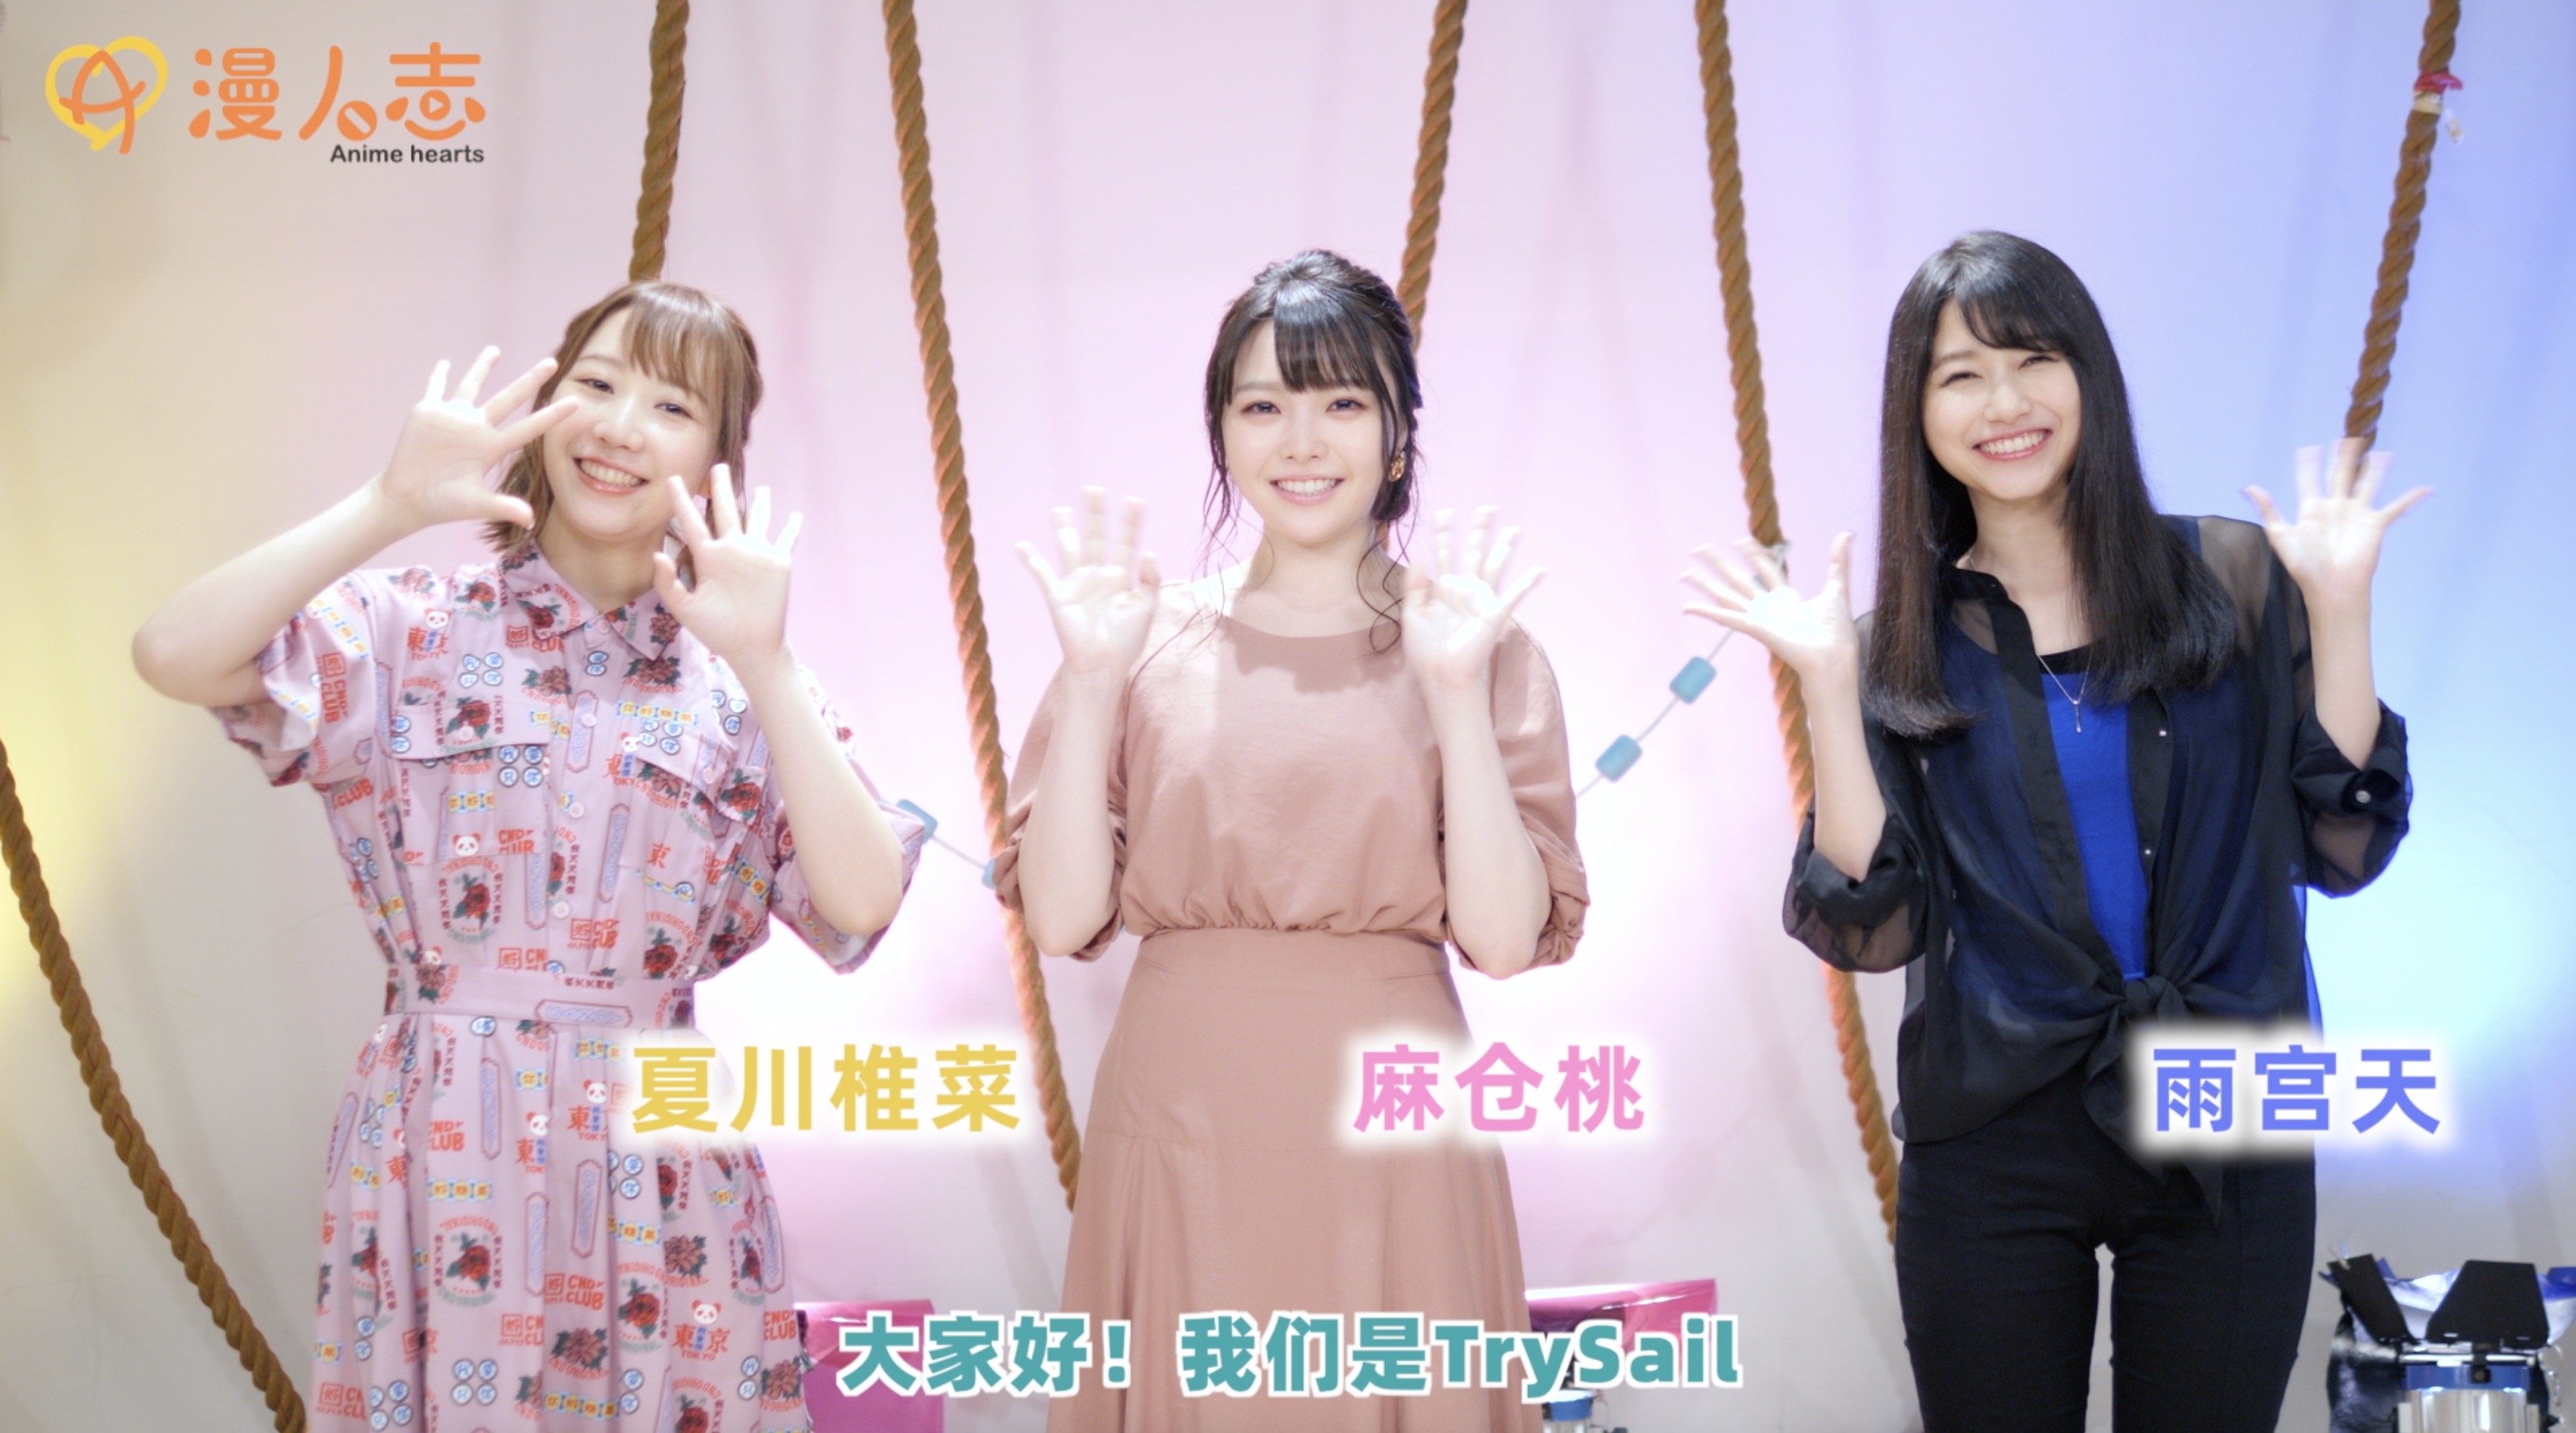 TrySail 5周年 ″Go for a Sail″ 线上演唱会PART2也要来咯